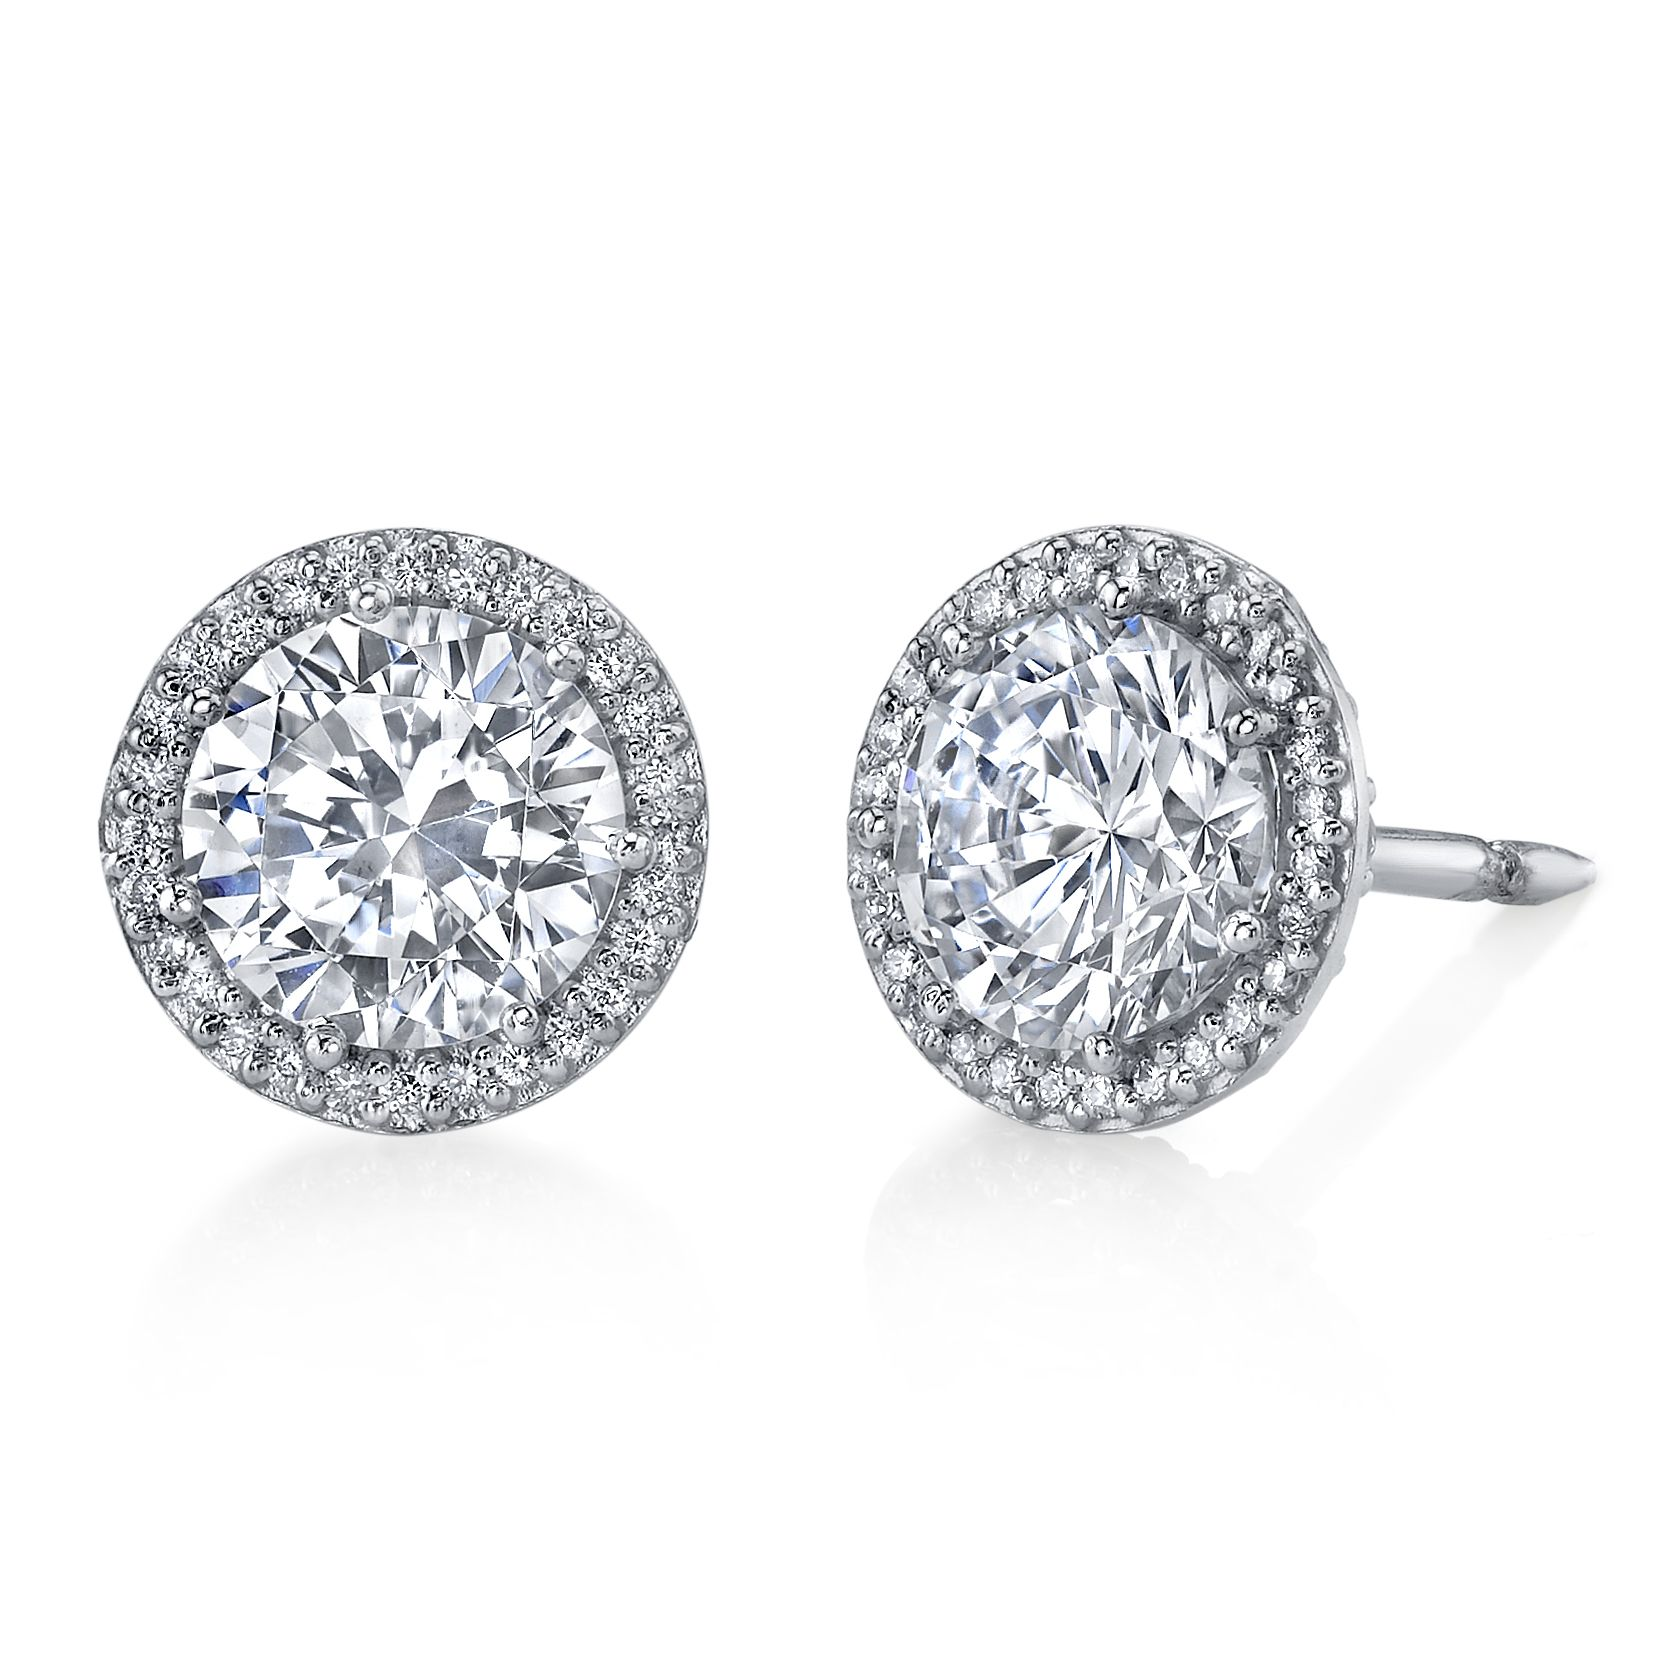 Explore Diamond Studs Halo And More Stud Earrings Tacori